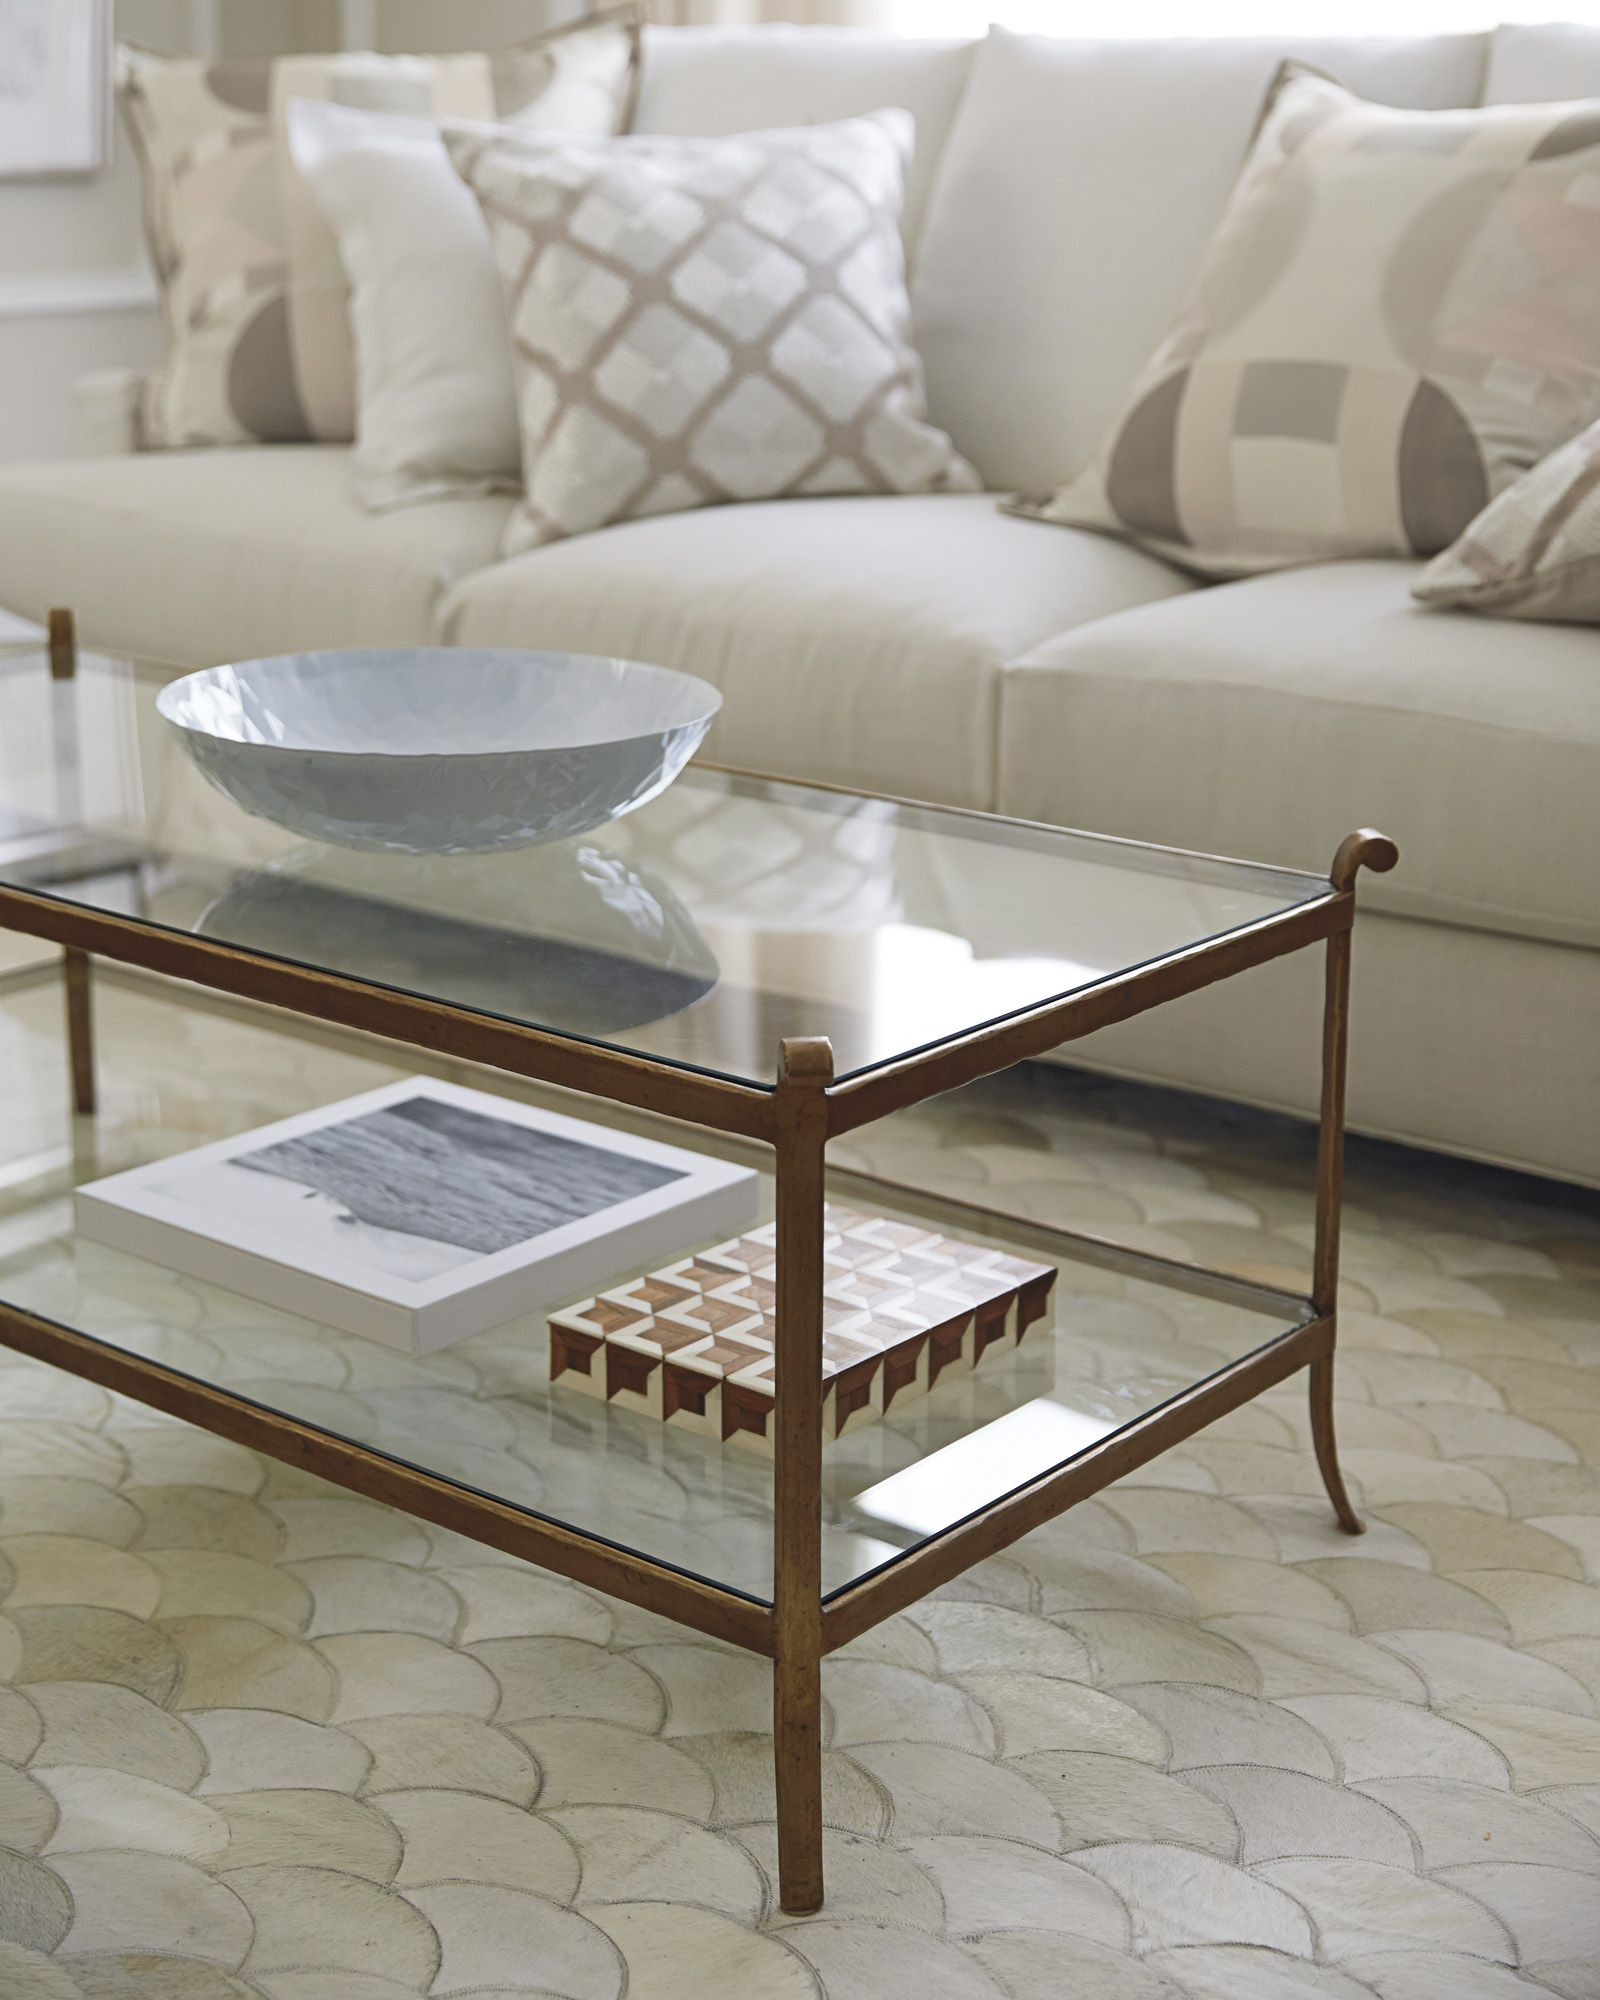 Serena & Lily St. Germain Coffee Table